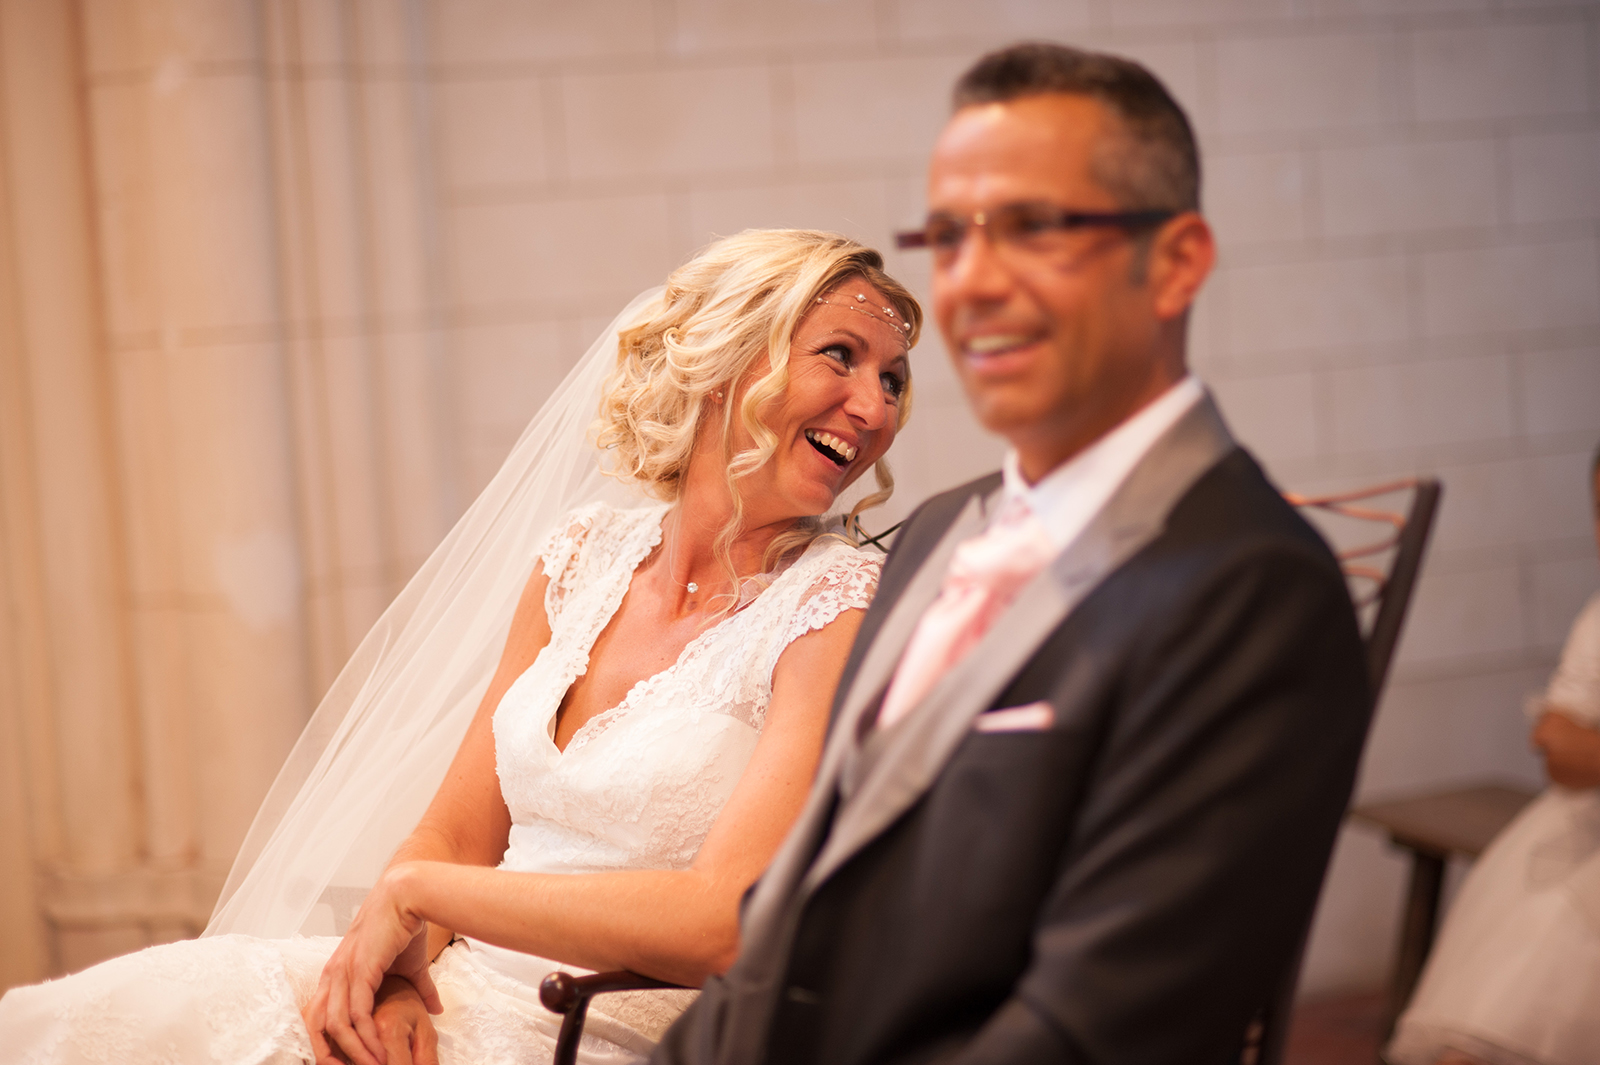 Peggy-Victor-photo-mariage-sabrina-godemert-photographe-seine-et-marne063